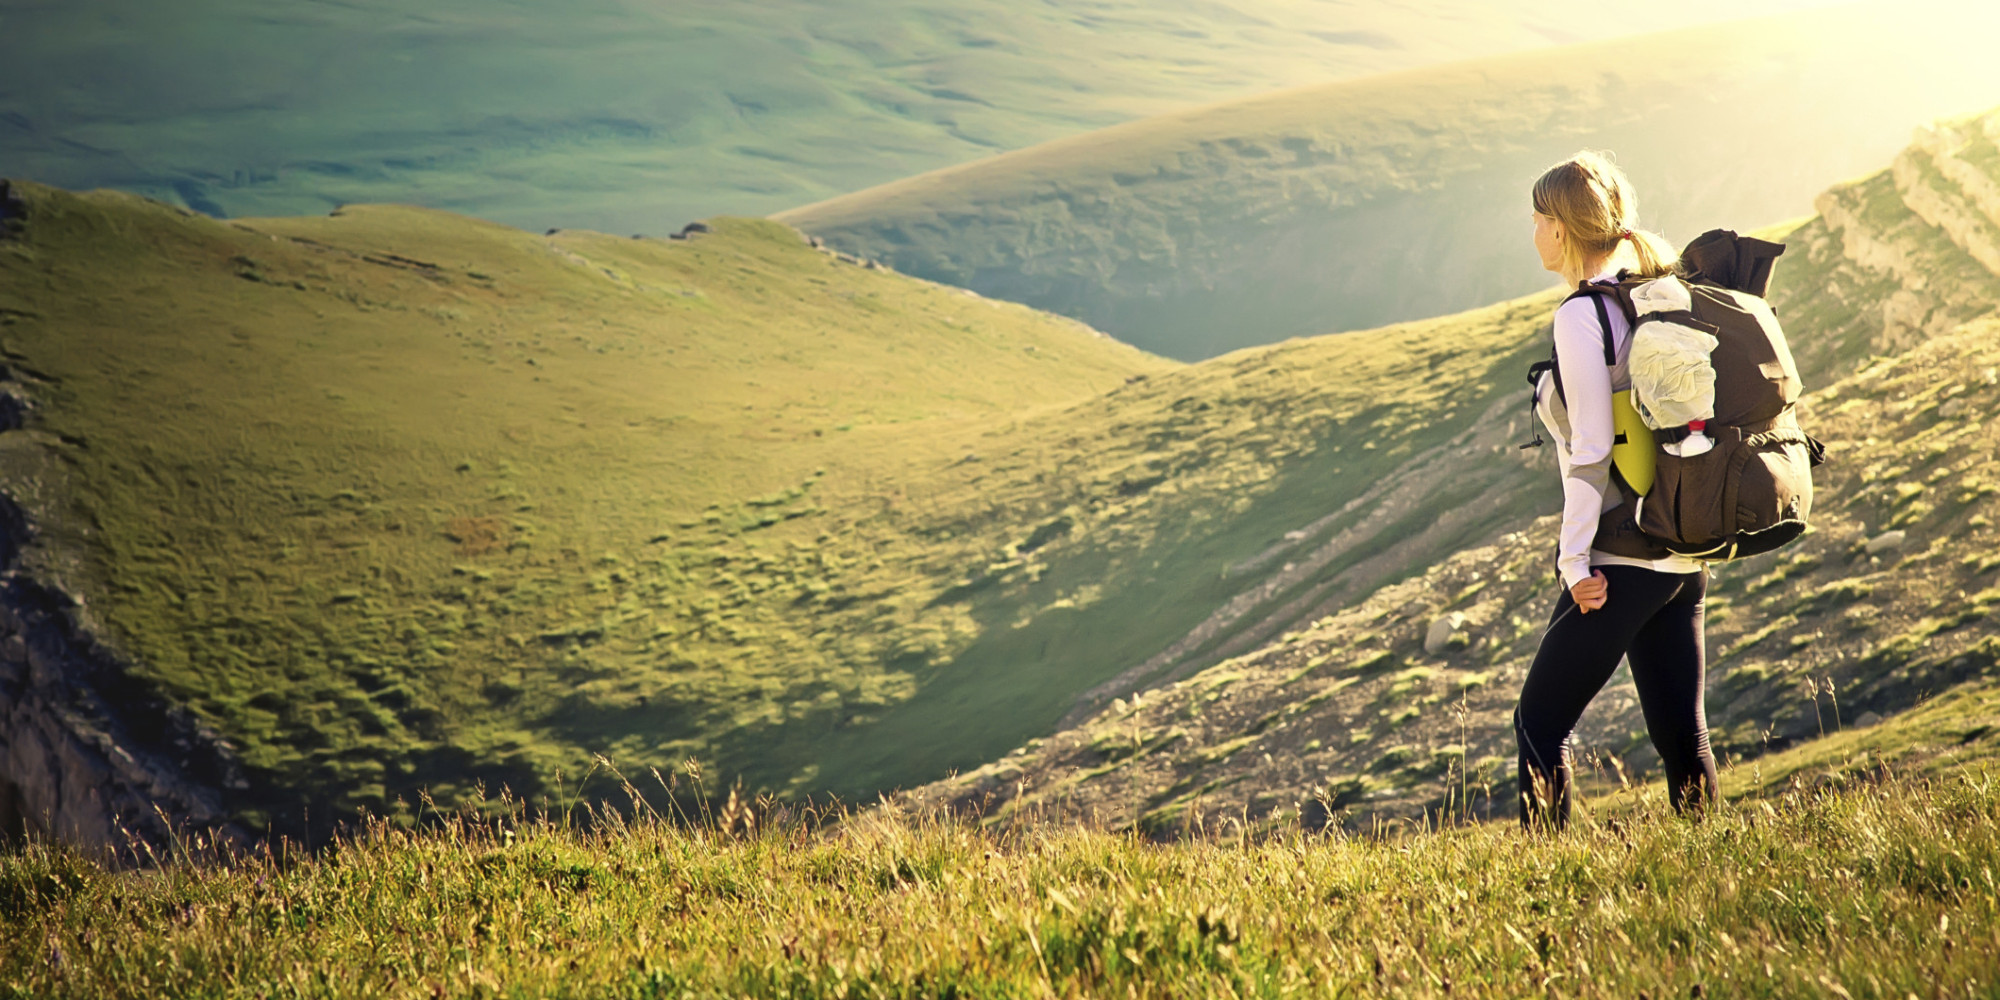 5 Lessons I Learned About Courage and Letting Go While Hiking With My Family   HuffPost